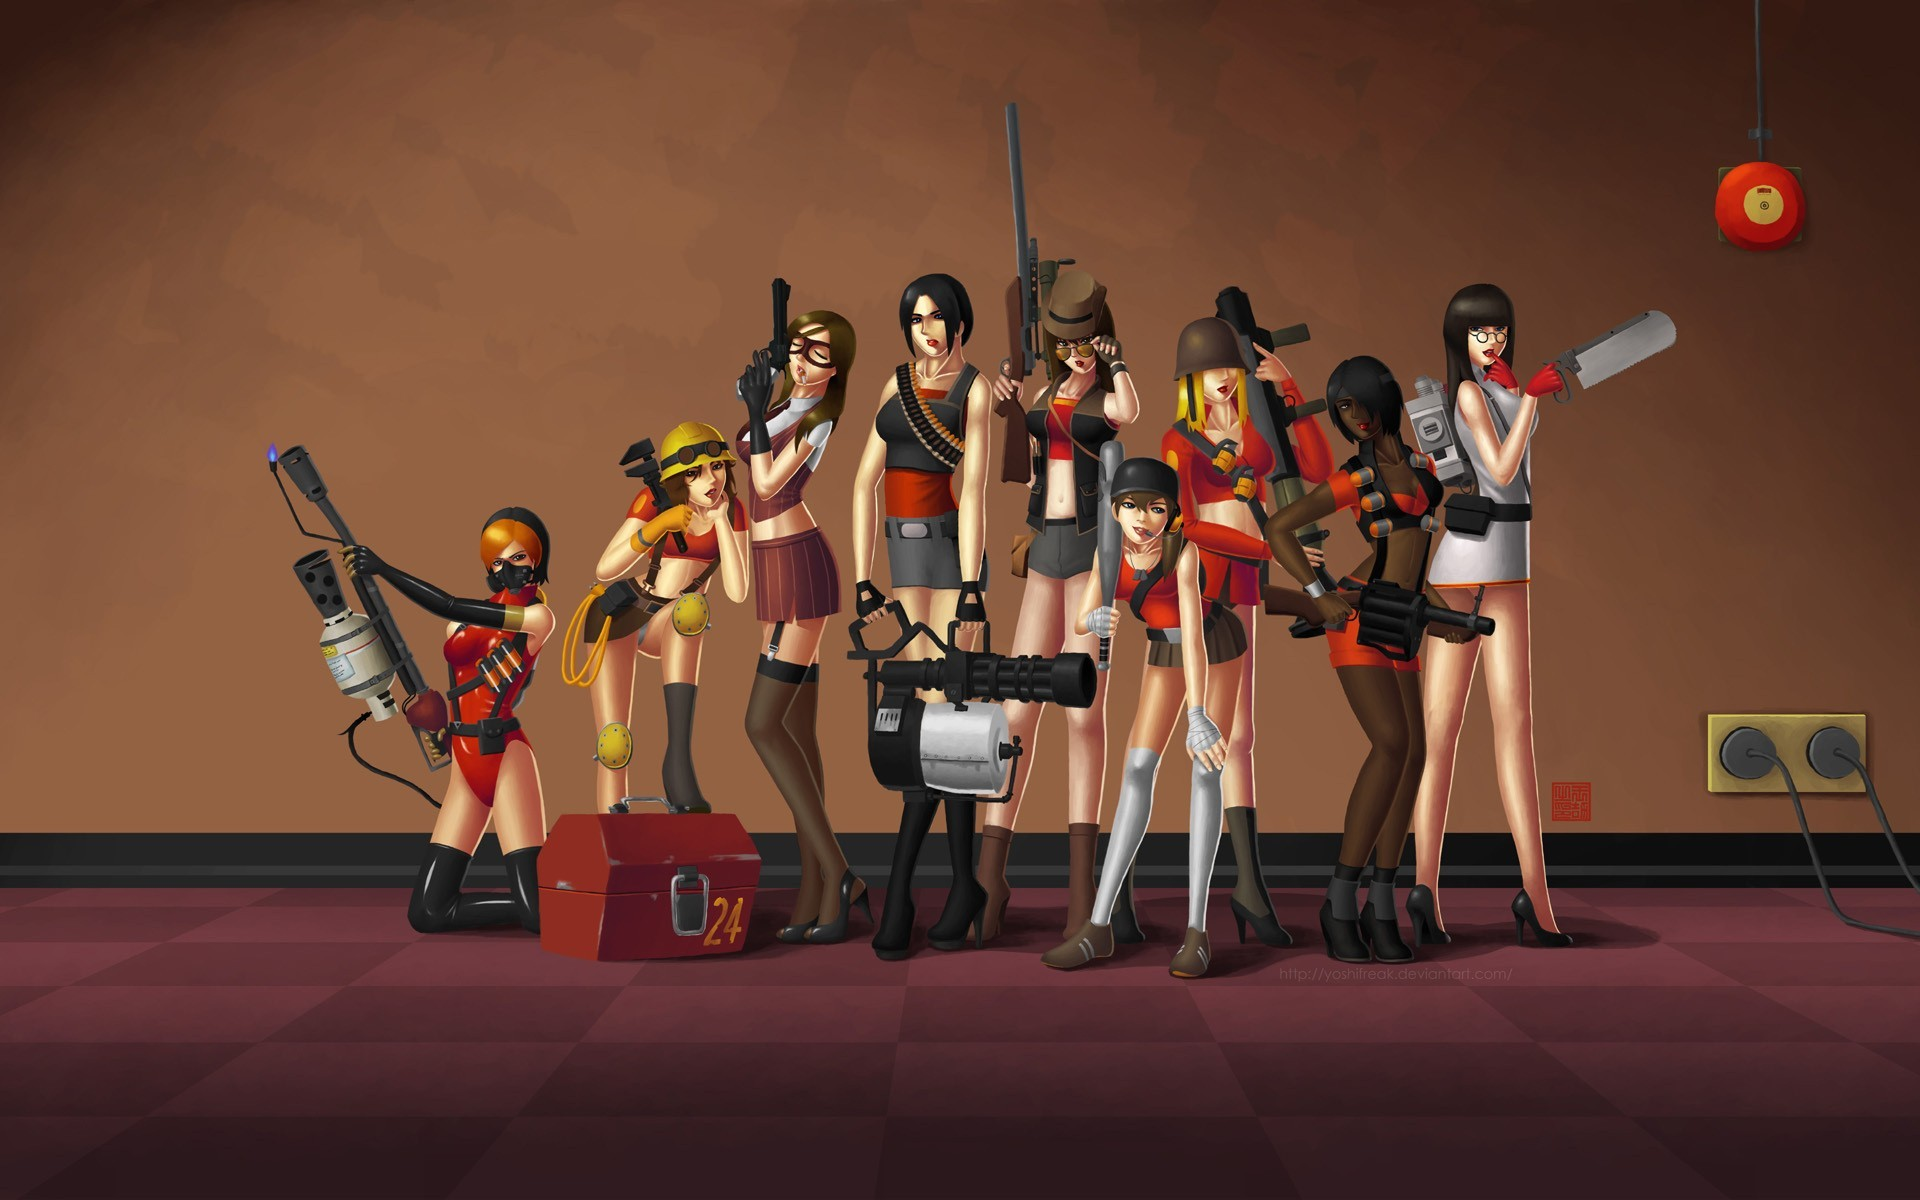 1920x1200 330 Team Fortress 2 HD Wallpapers | Backgrounds - Wallpaper Abyss